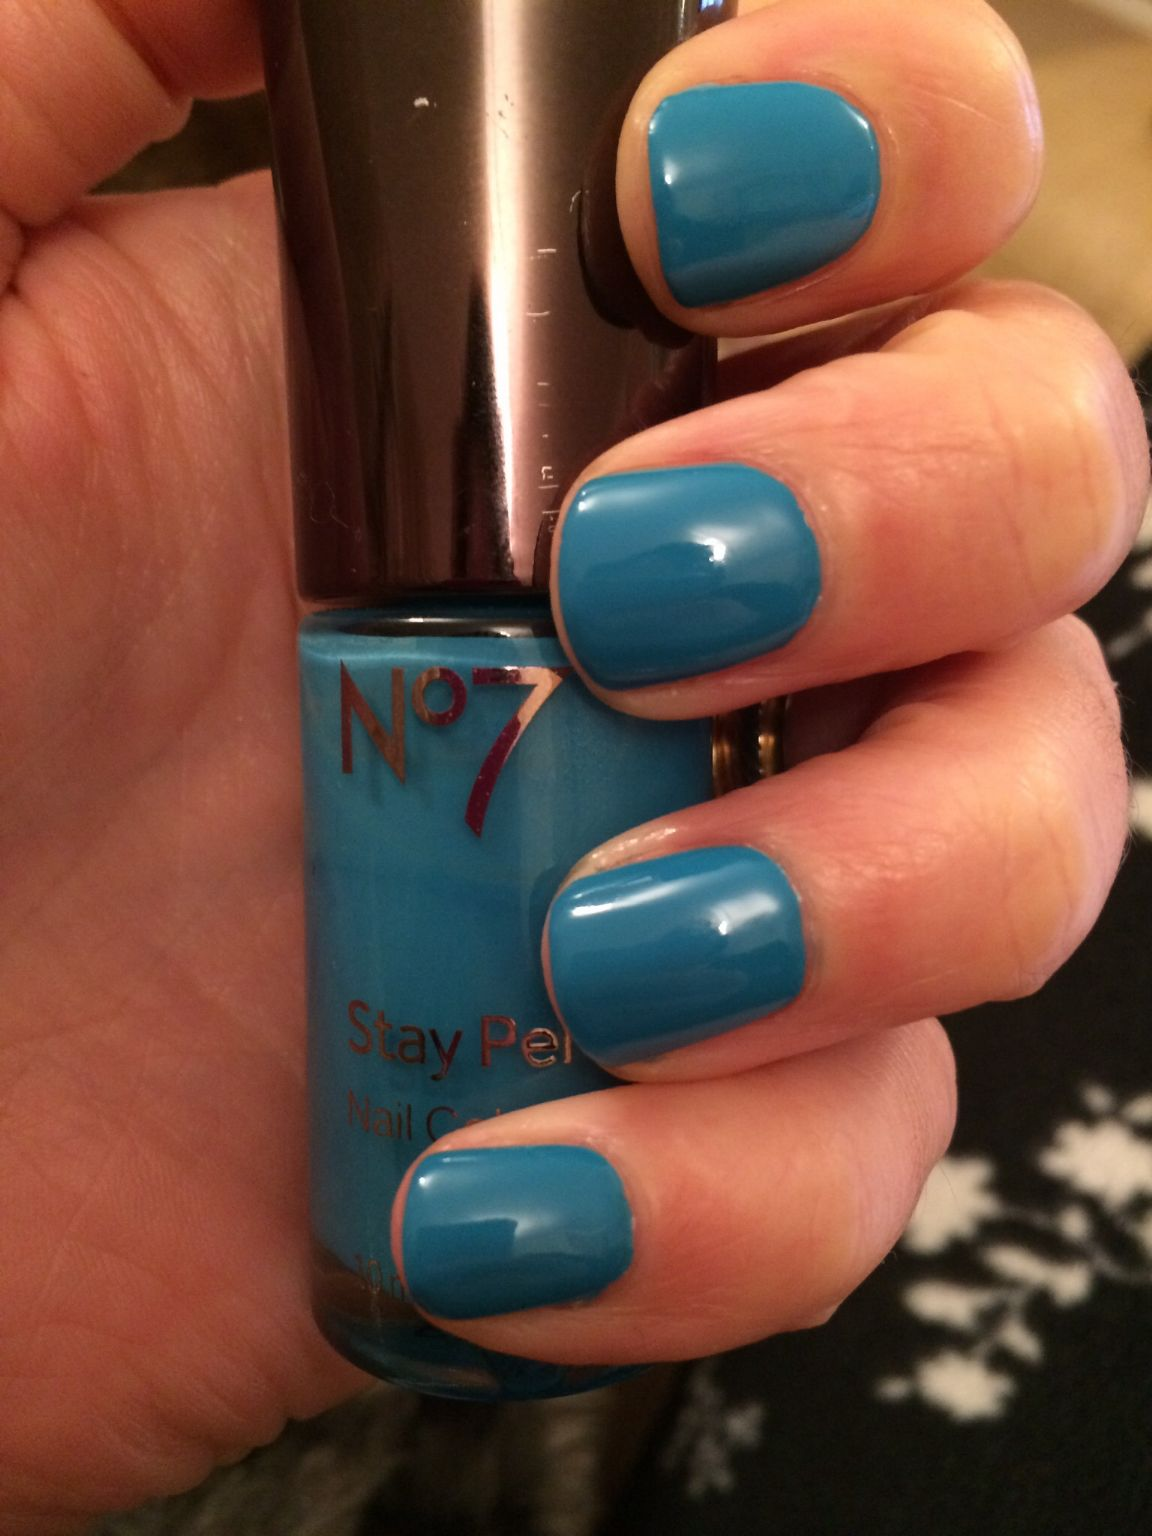 Boots No7 Stay Perfect Nail Colour reviews, photos - MakeupAlley